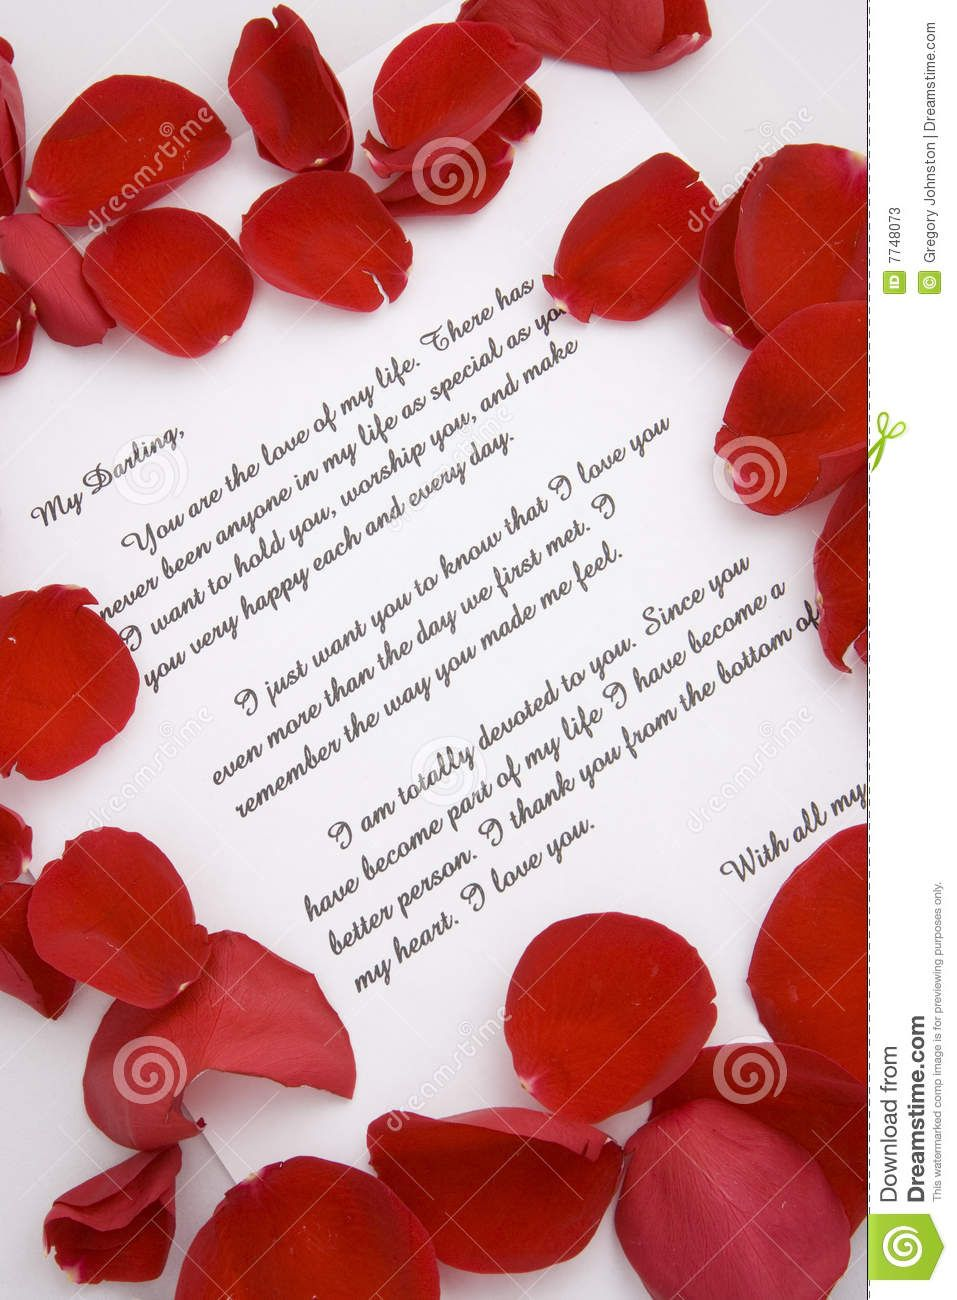 Love letter valentines day happy mothers day 2015 quotes poems love letter valentines day spiritdancerdesigns Image collections